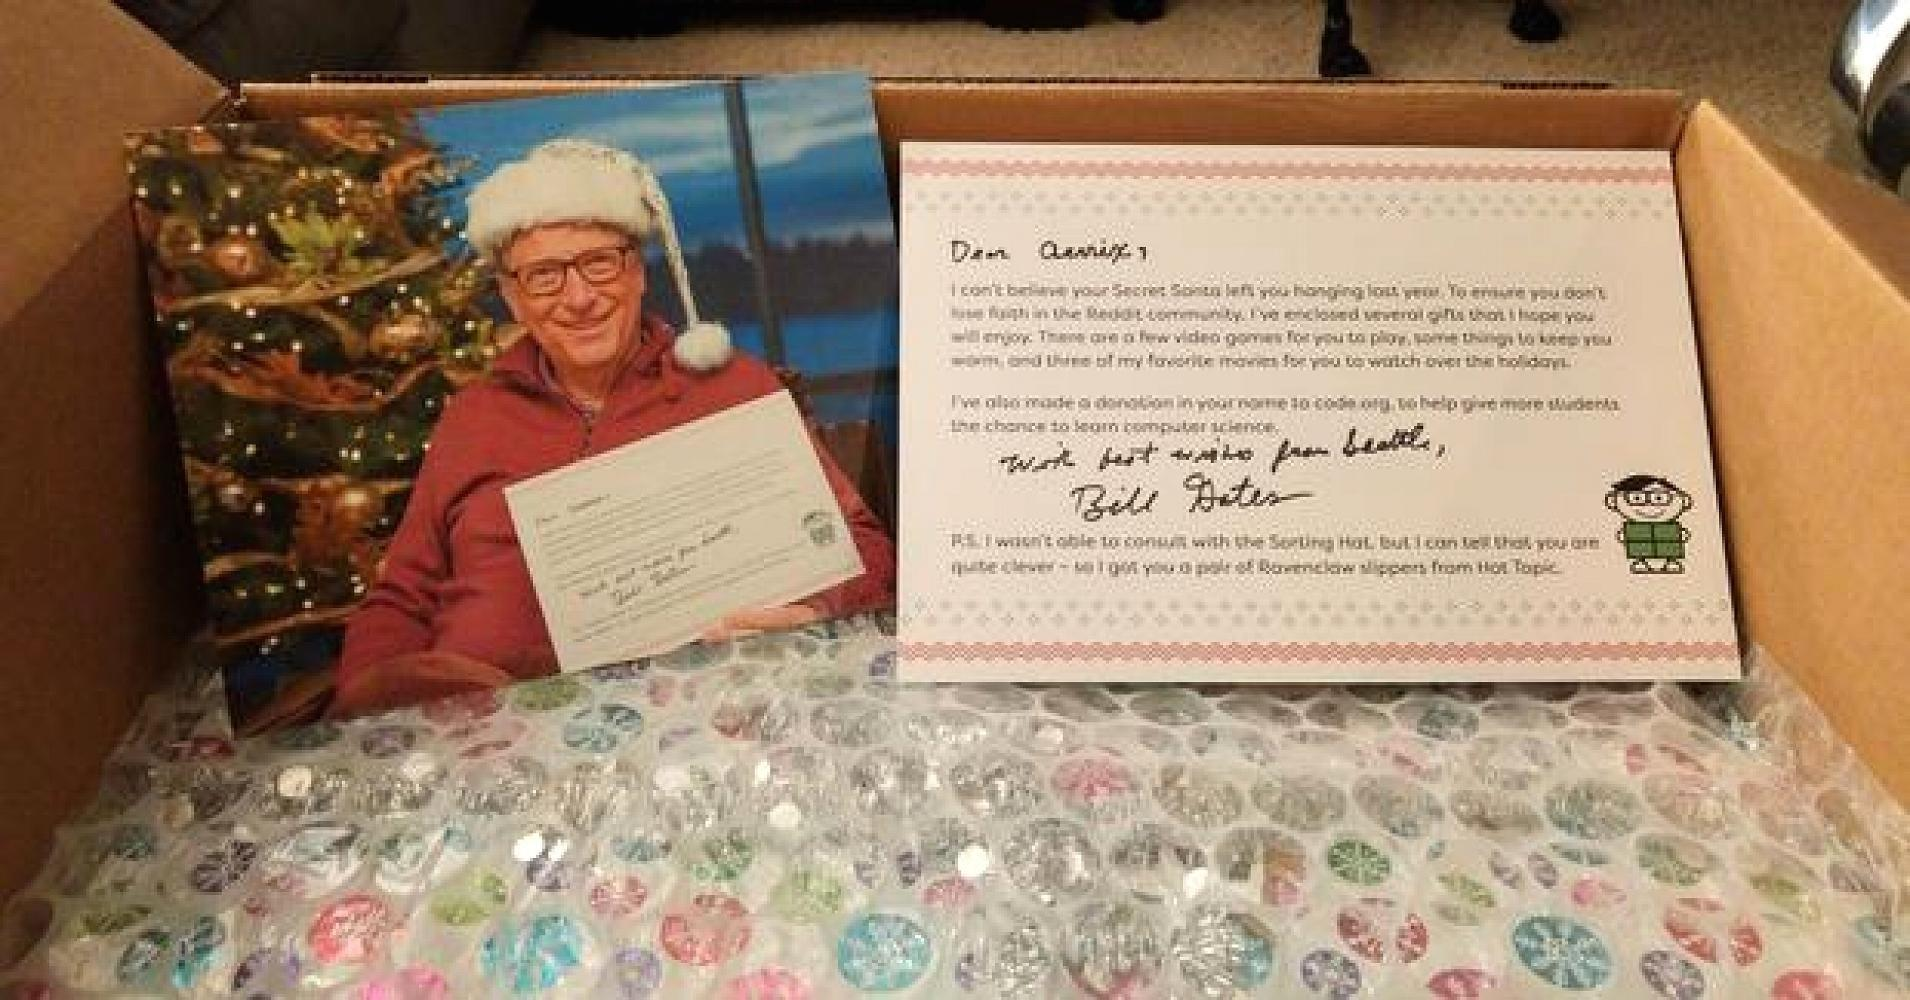 Bill Gates showers a lucky Redditor with gifts in Secret Santa exchange